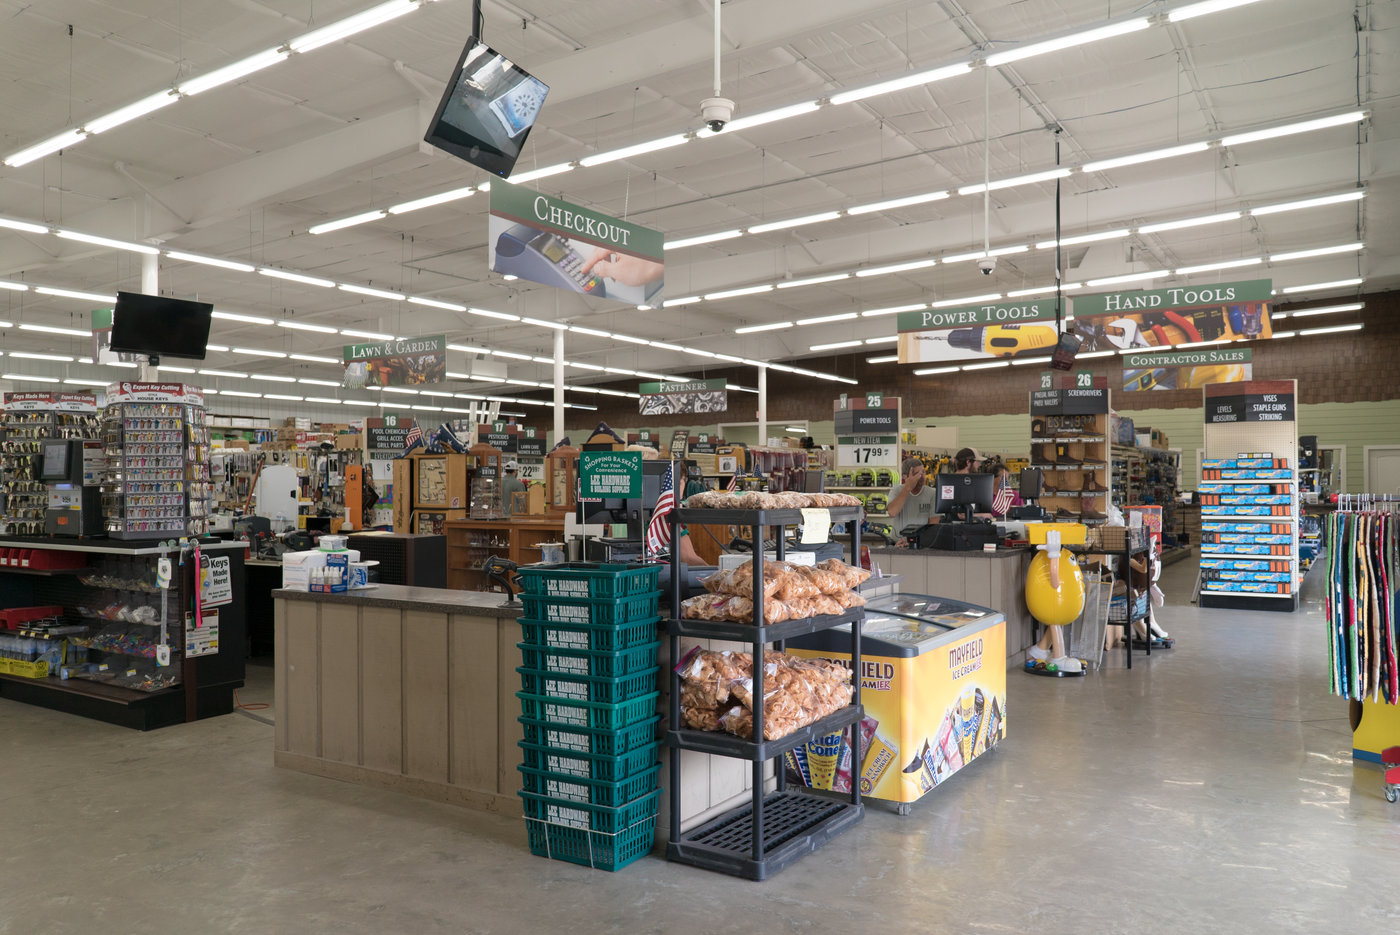 The new, larger sales floor enables them to stock more in core categories while expanding into new categories like grills and pool supplies.